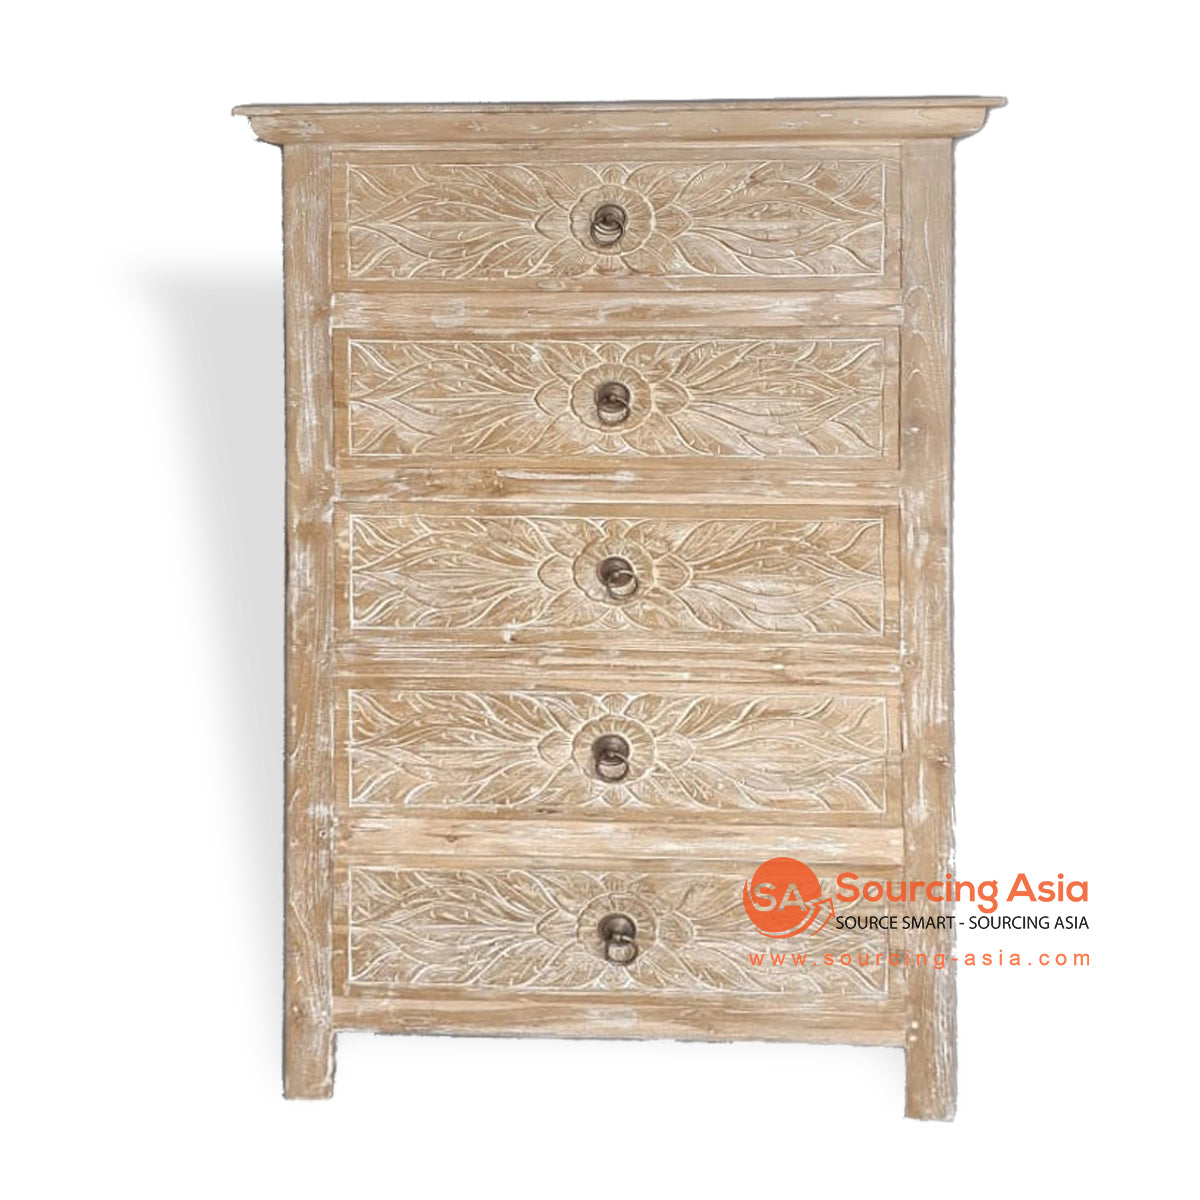 LAC059 CARVED 5 DRAWER CHEST OF DRAWERS